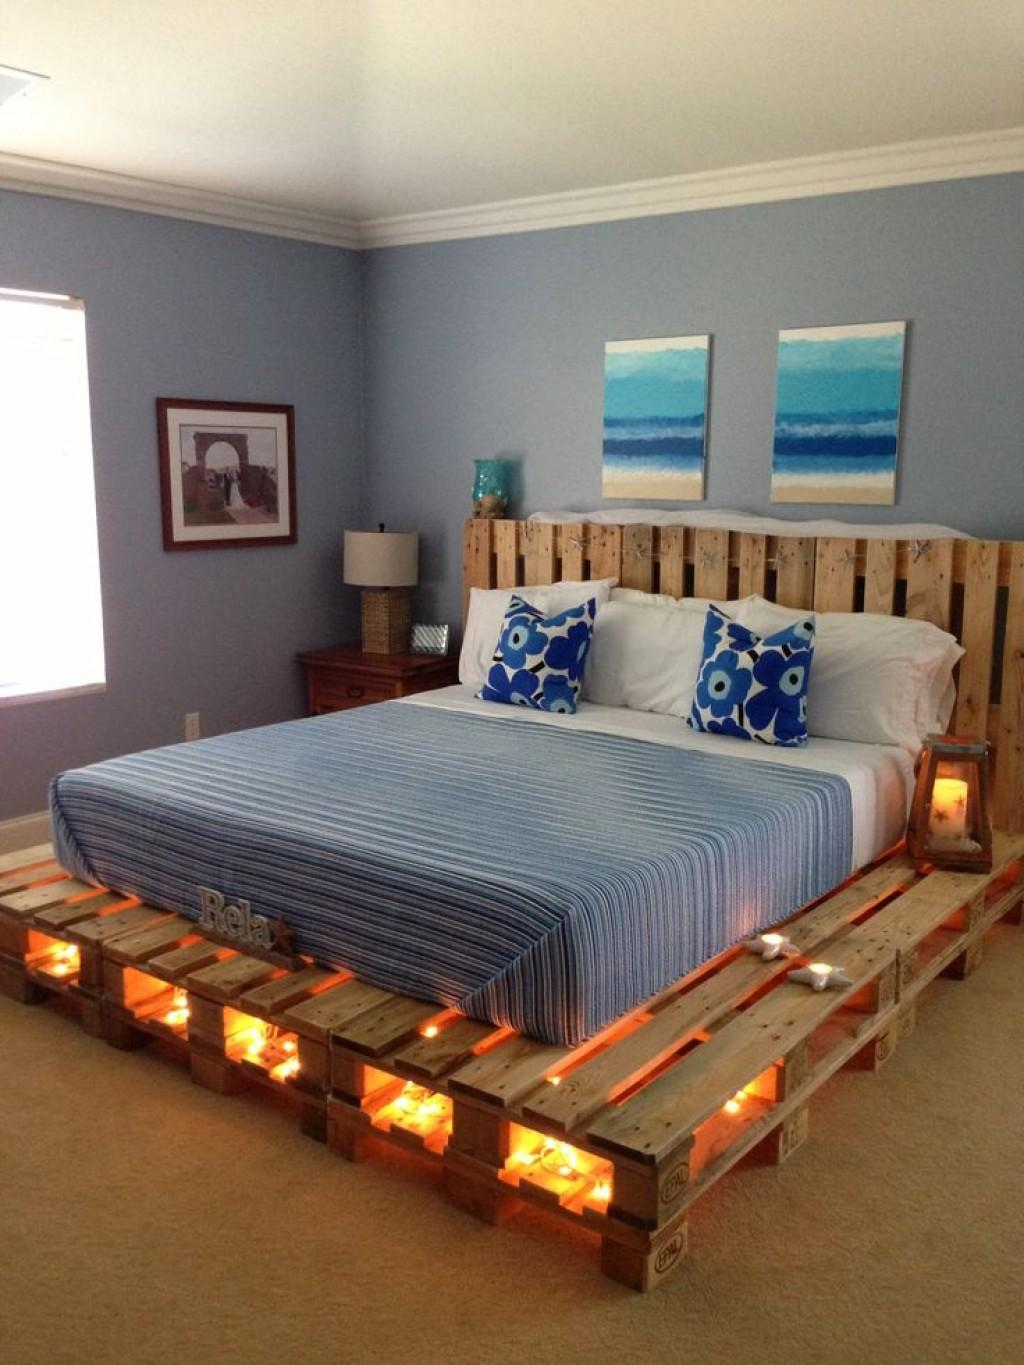 Japanese Inspired Low Bed Frame Pallet Project Decoration Ideas